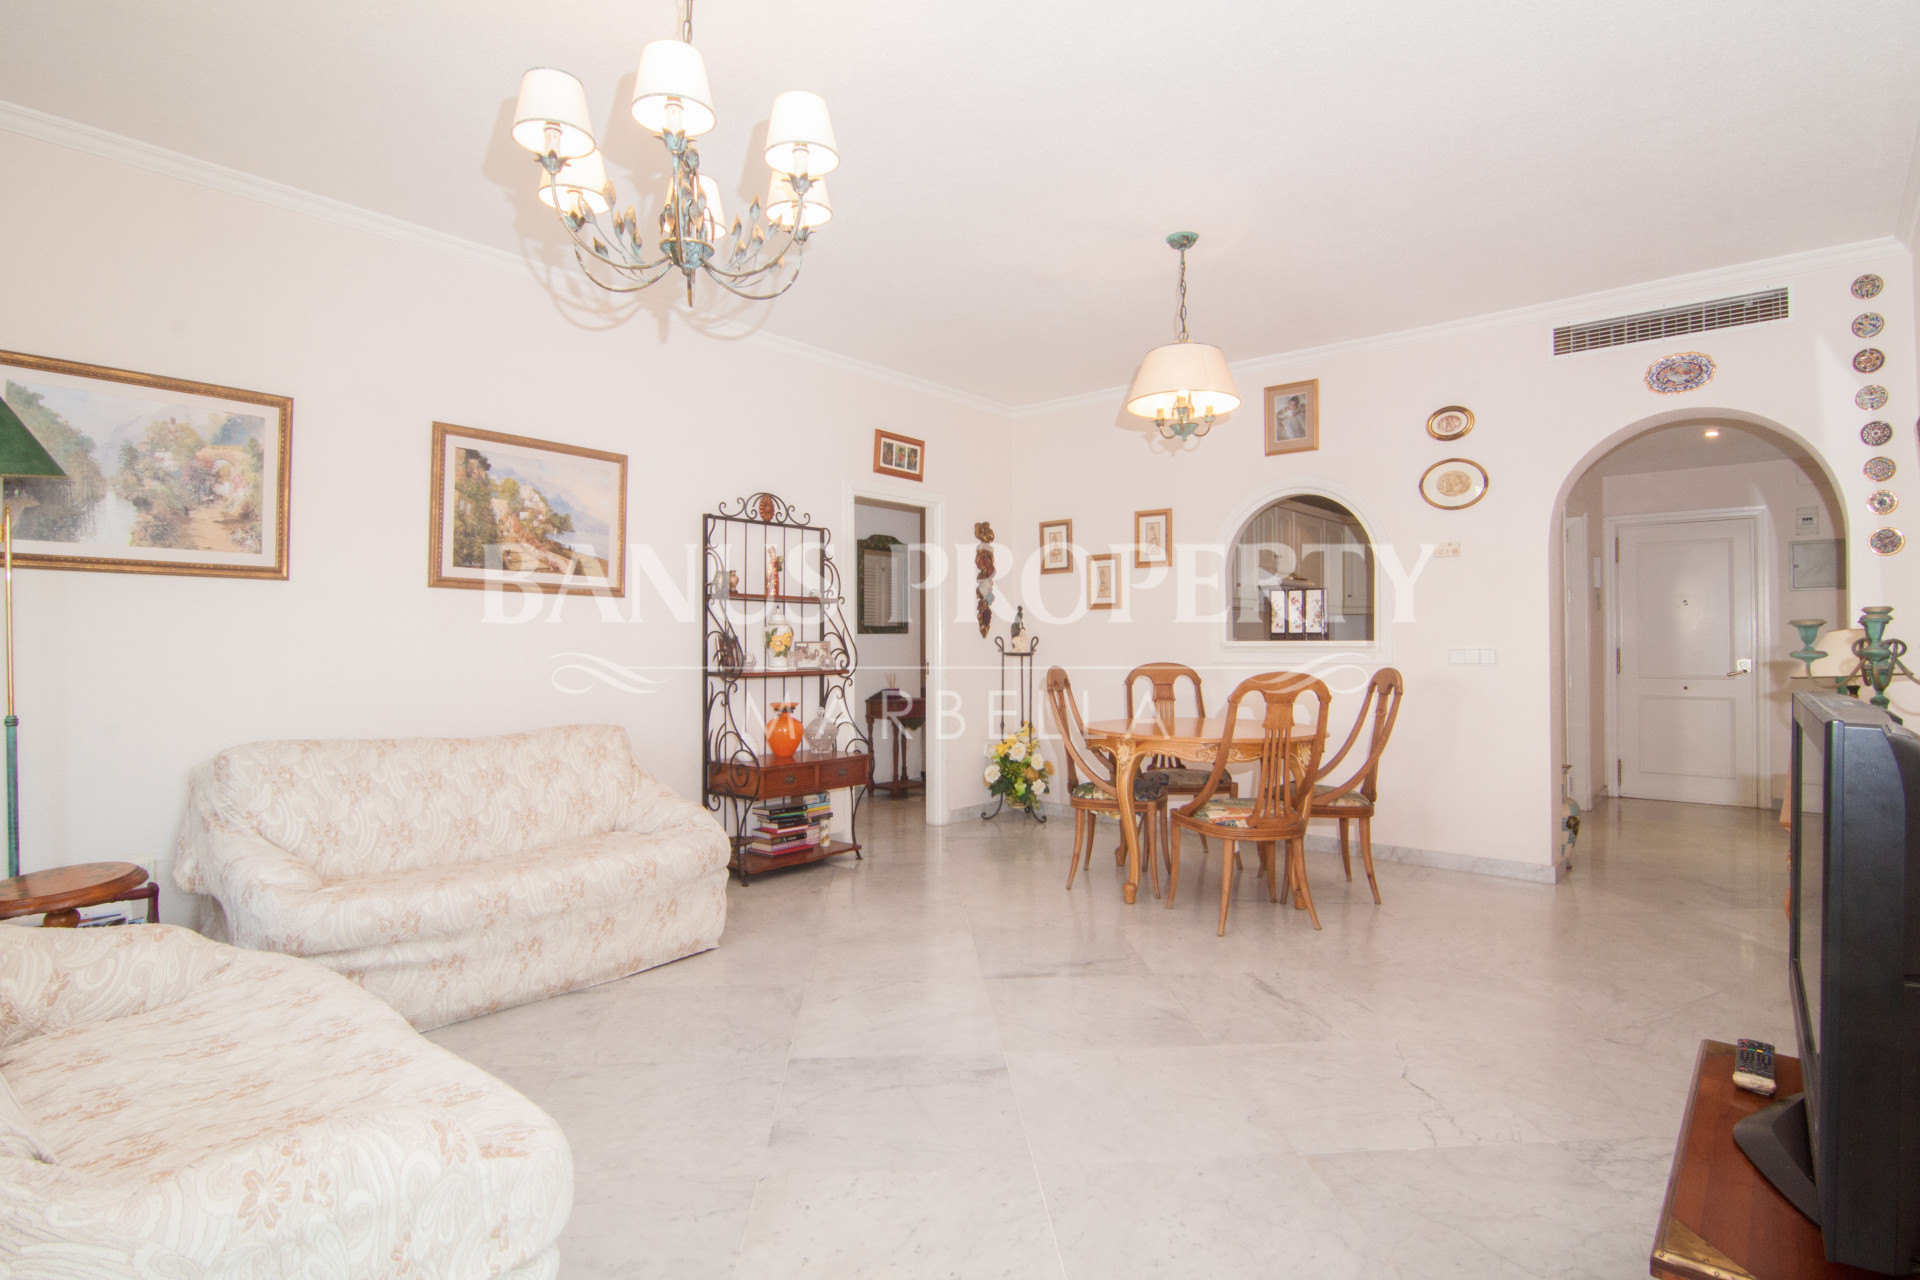 Two-bedroom, third floor apartment for sale in Edificio Sevilla, Playas del Duque, Puerto Banús